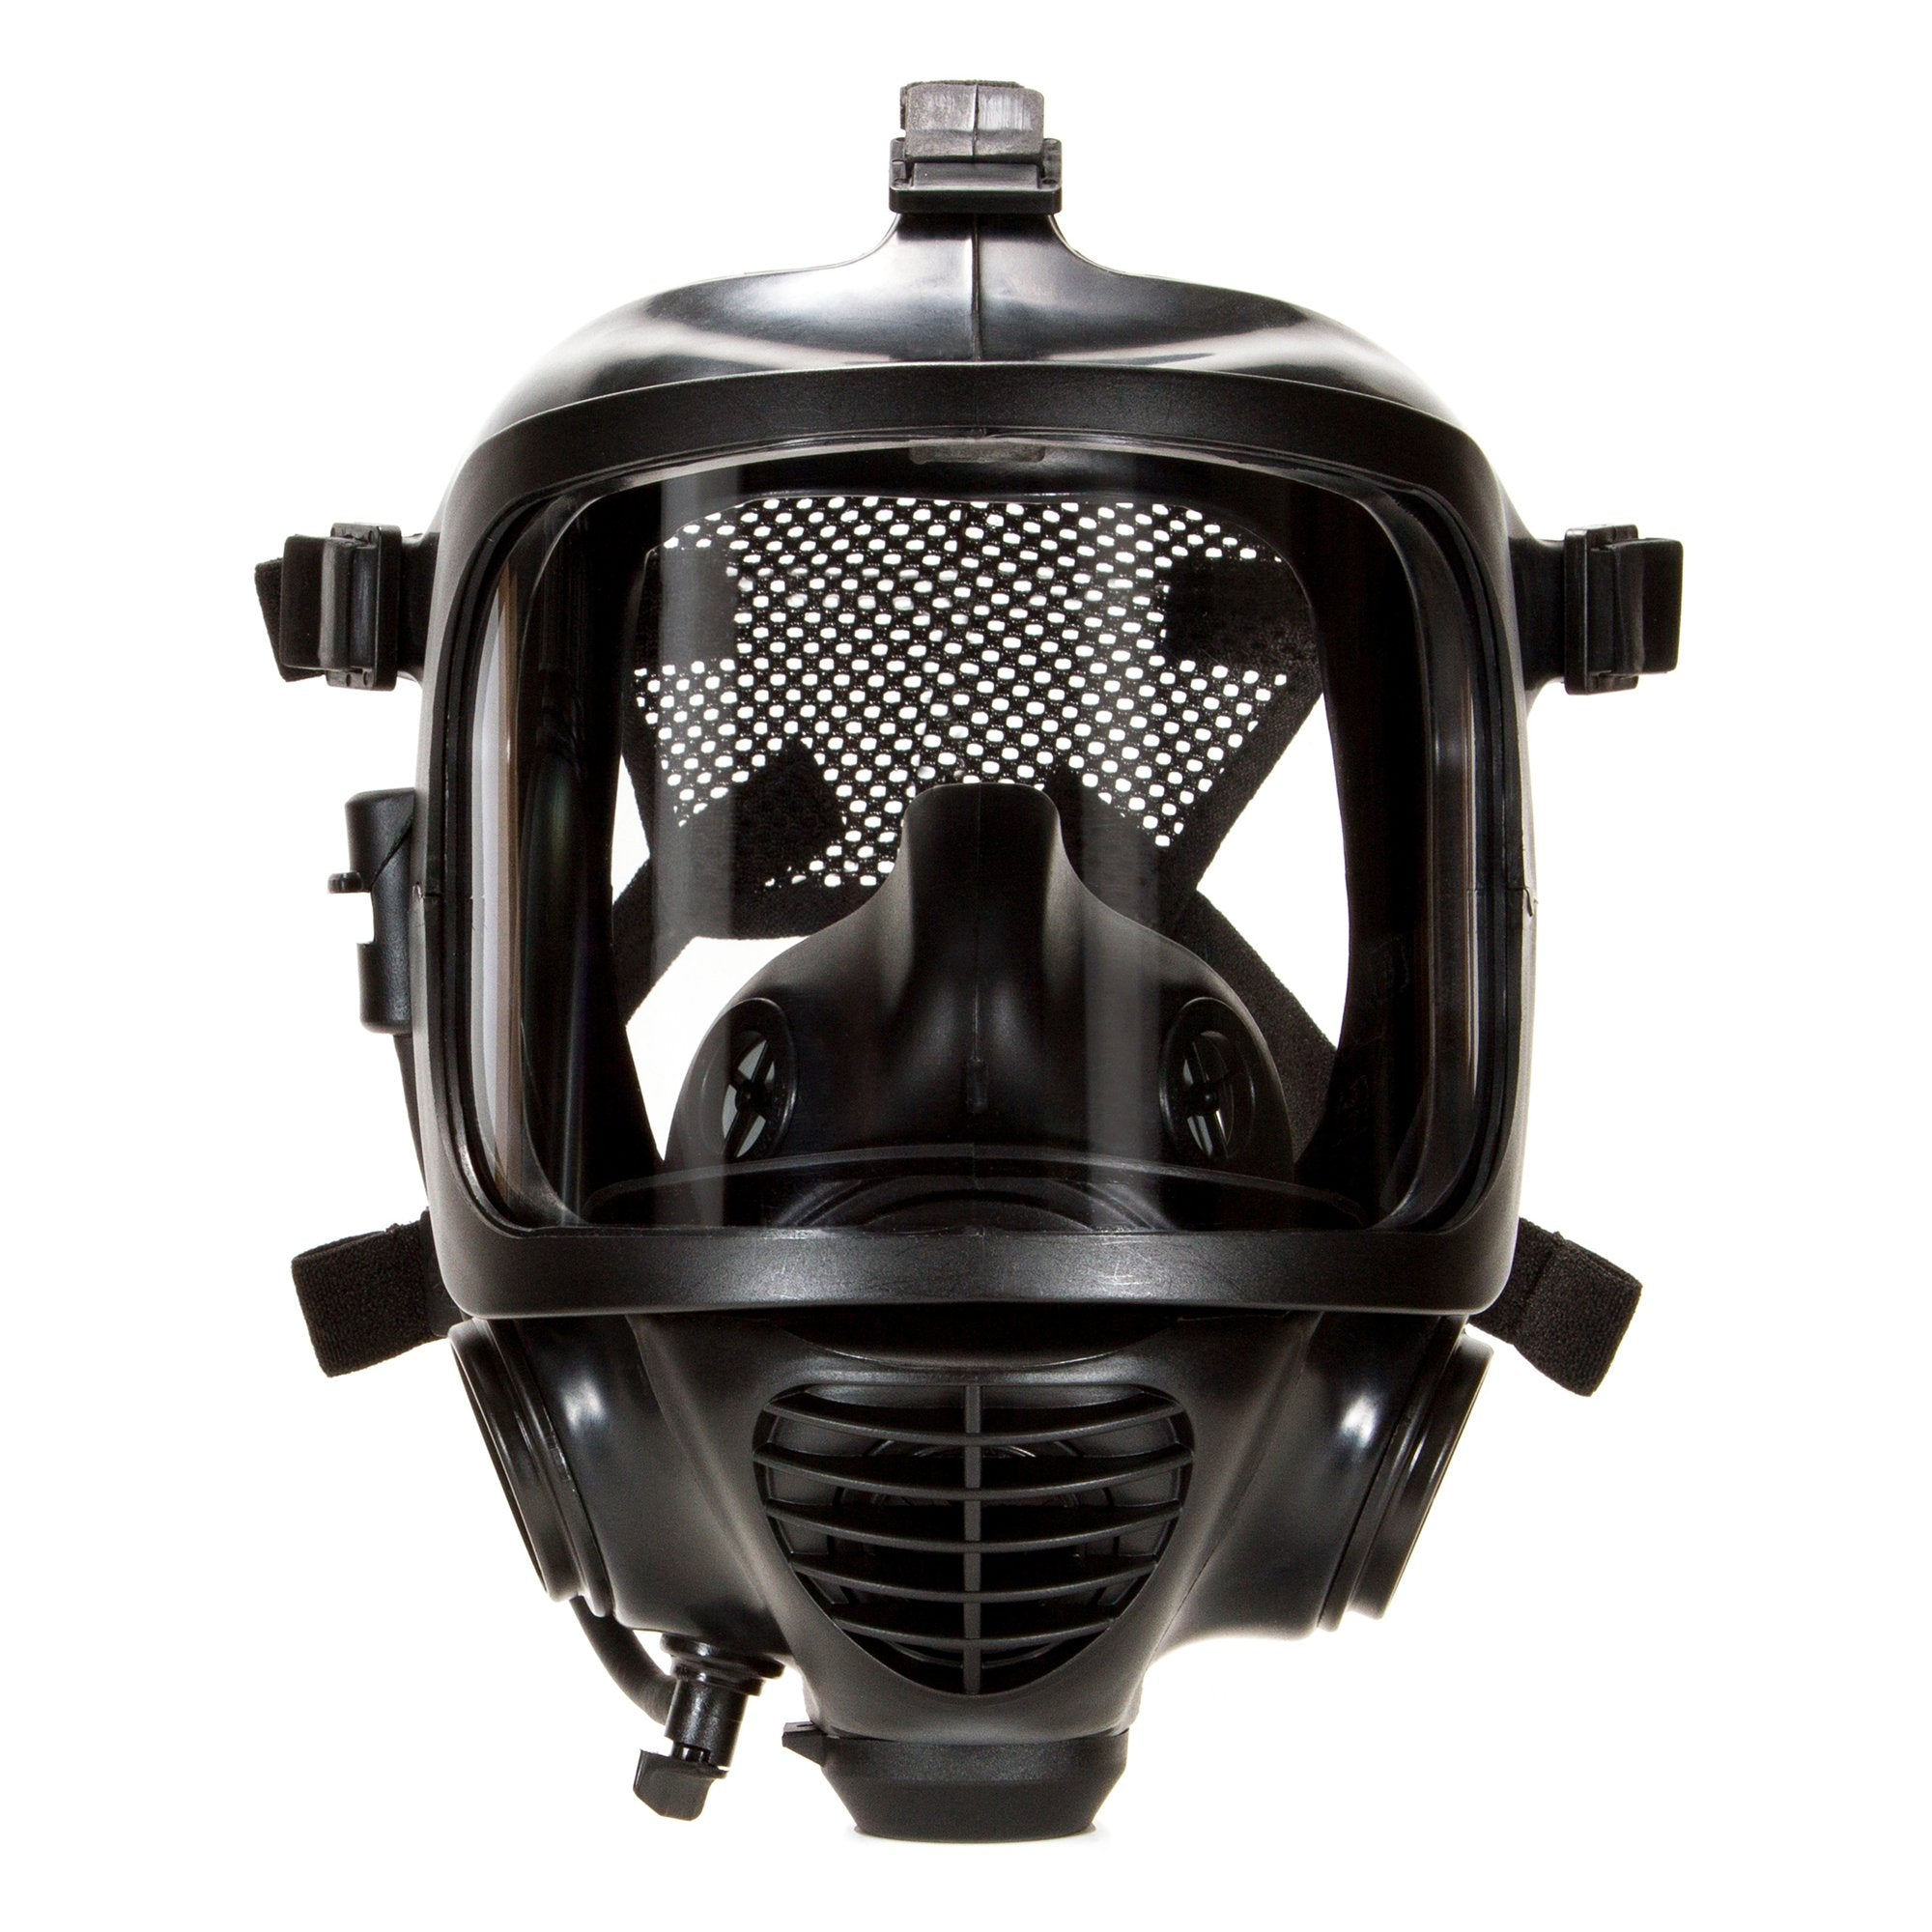 CM-6M Tactical Gas Mask - Full-Face Respirator for CBRN Defense